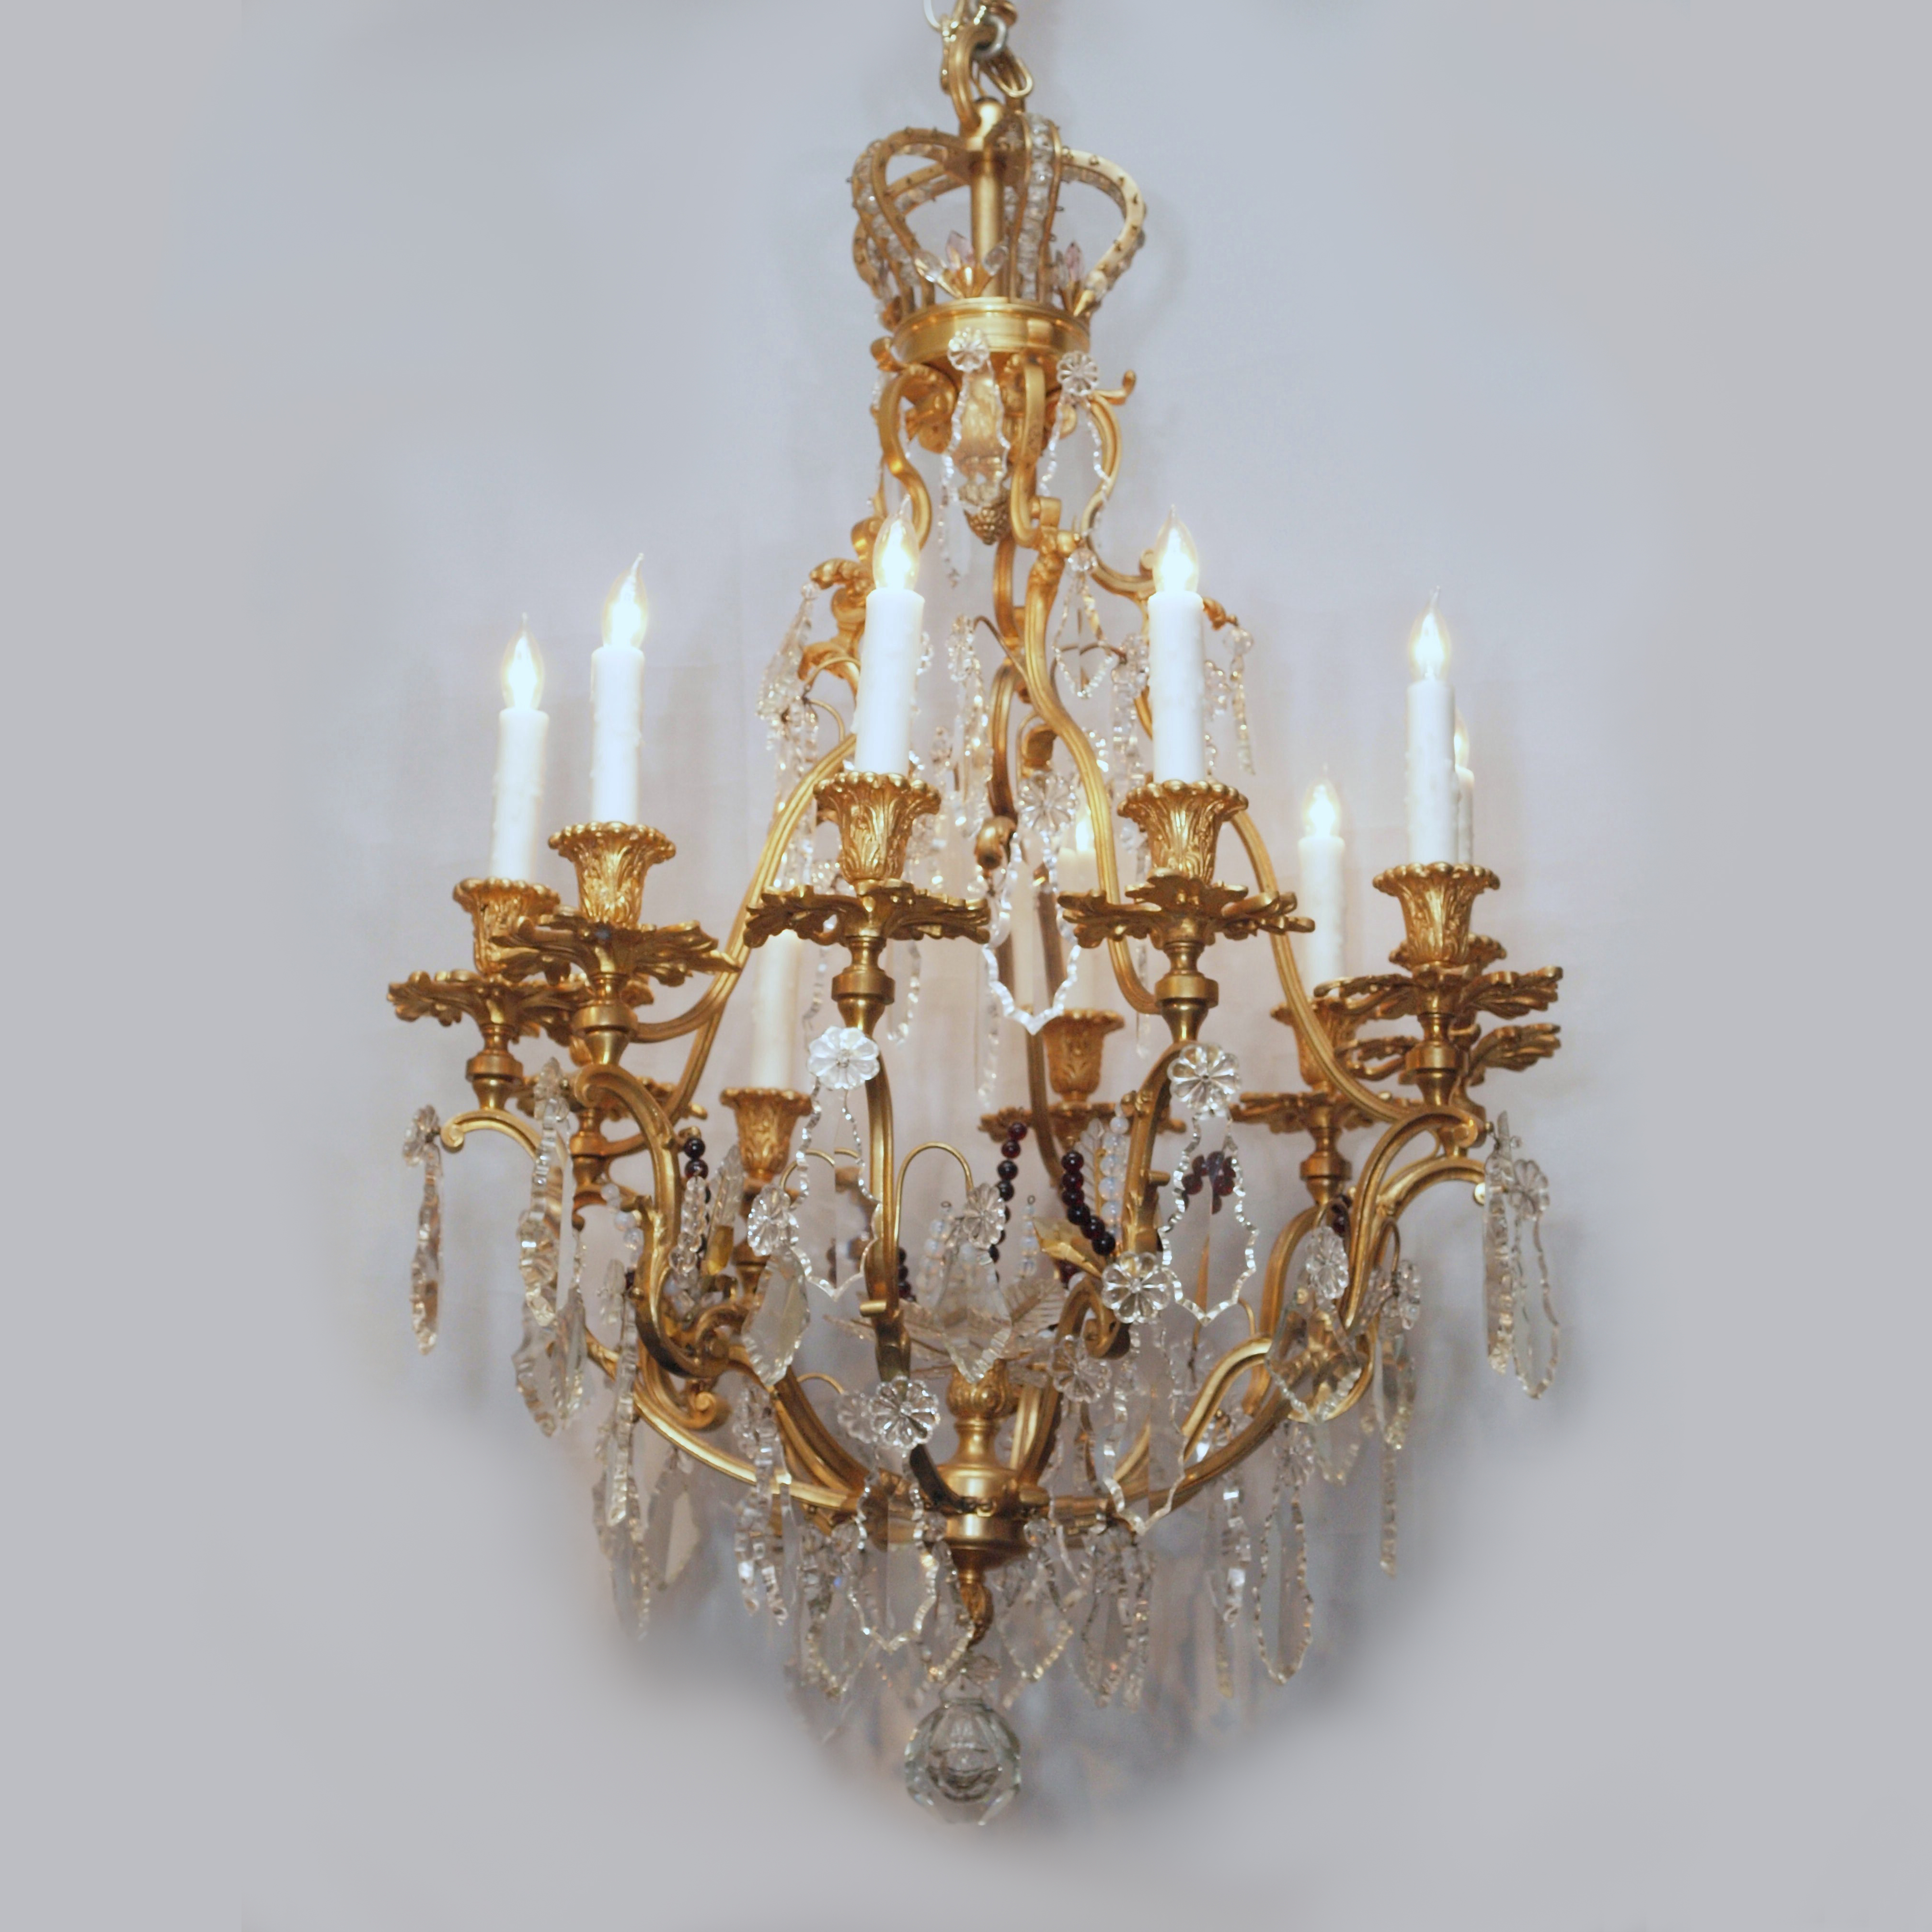 Antique French Gold Bronze and Crystal Chandelier with Crown circa